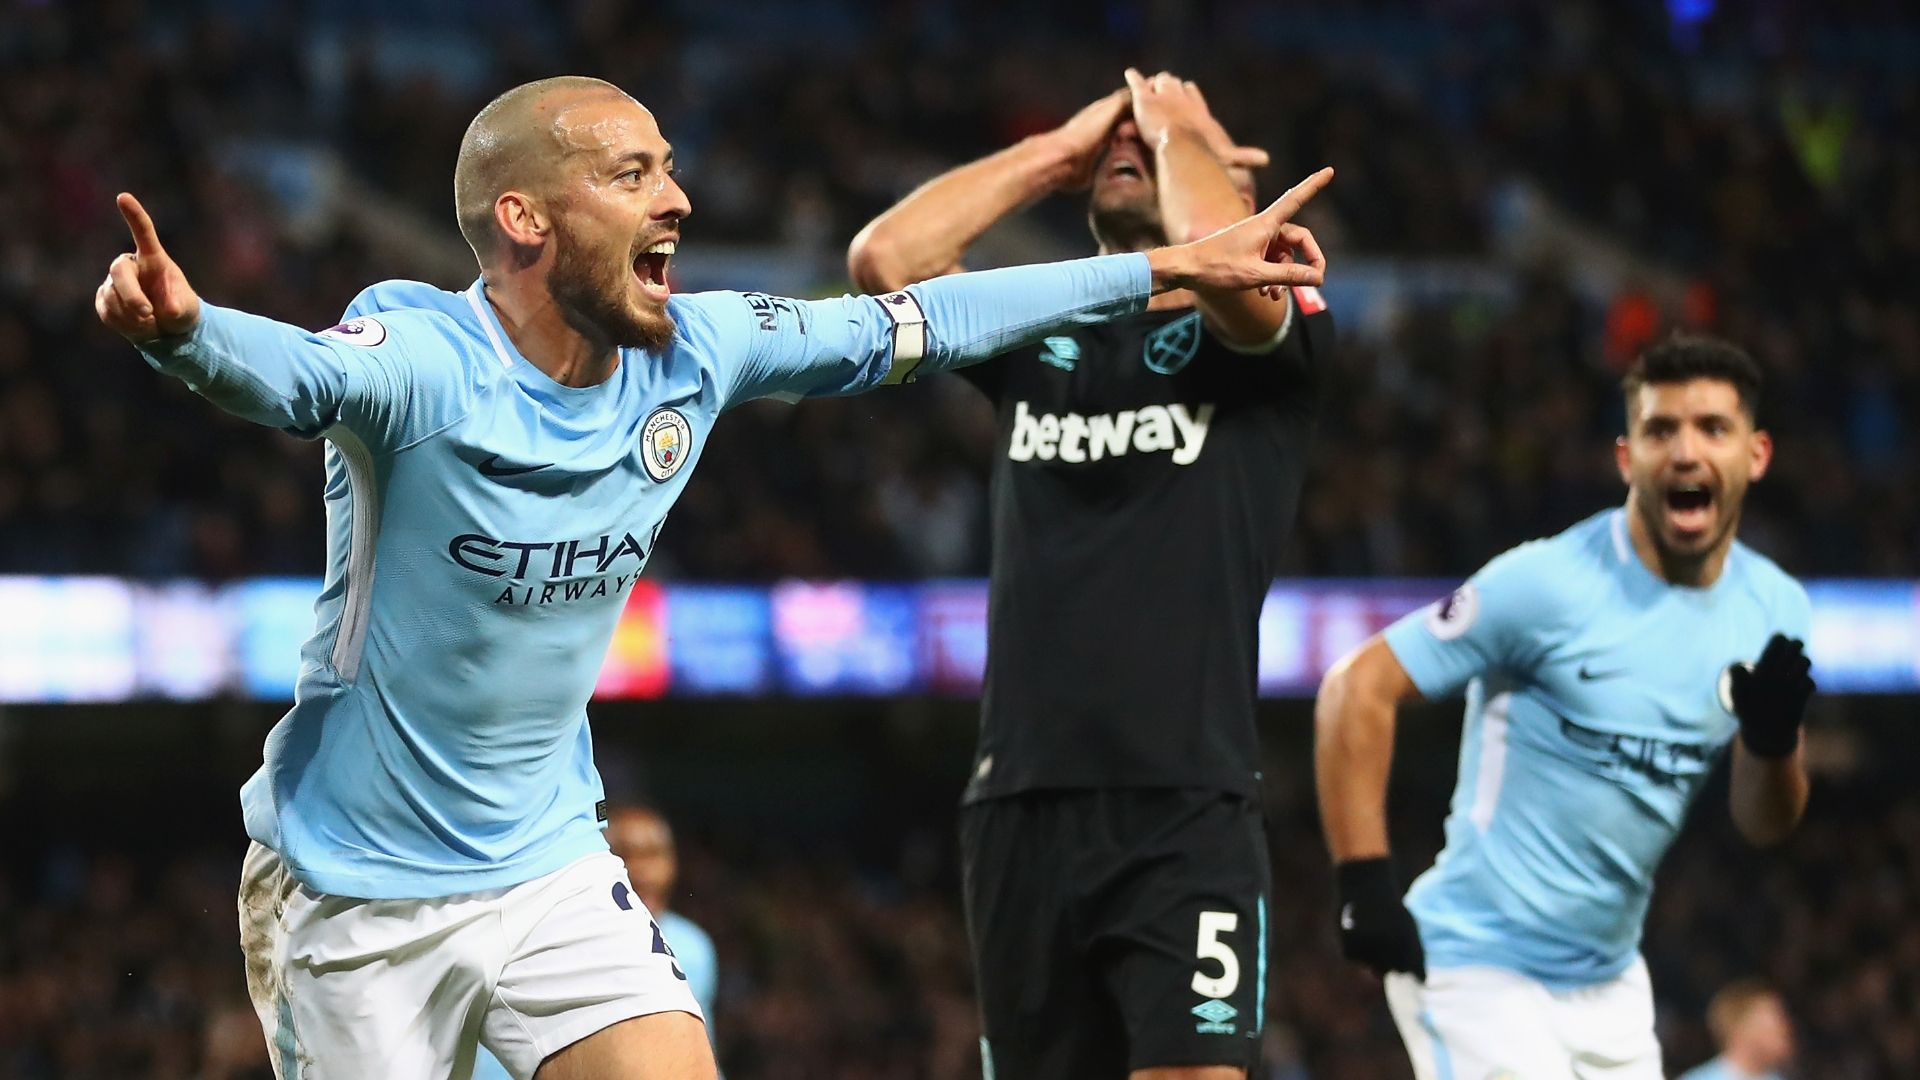 Man City claim top spot as PSG tumble